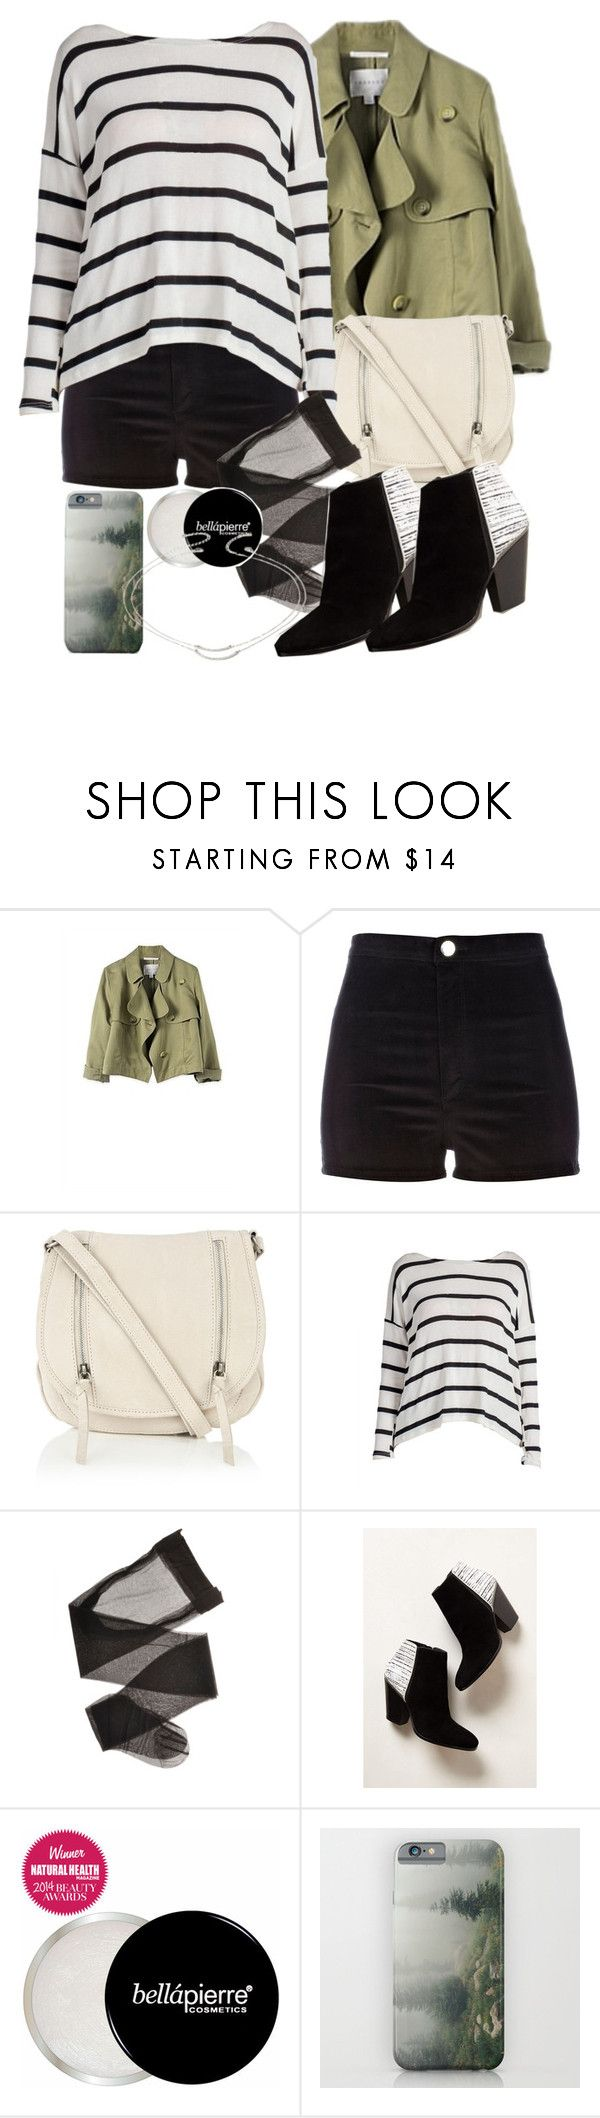 """""""Allison Inspired Outfit with High-Waisted Black Shorts"""" by veterization ❤ liked on Polyvore featuring River Island, Oasis, Dolce Vita and Forever 21"""